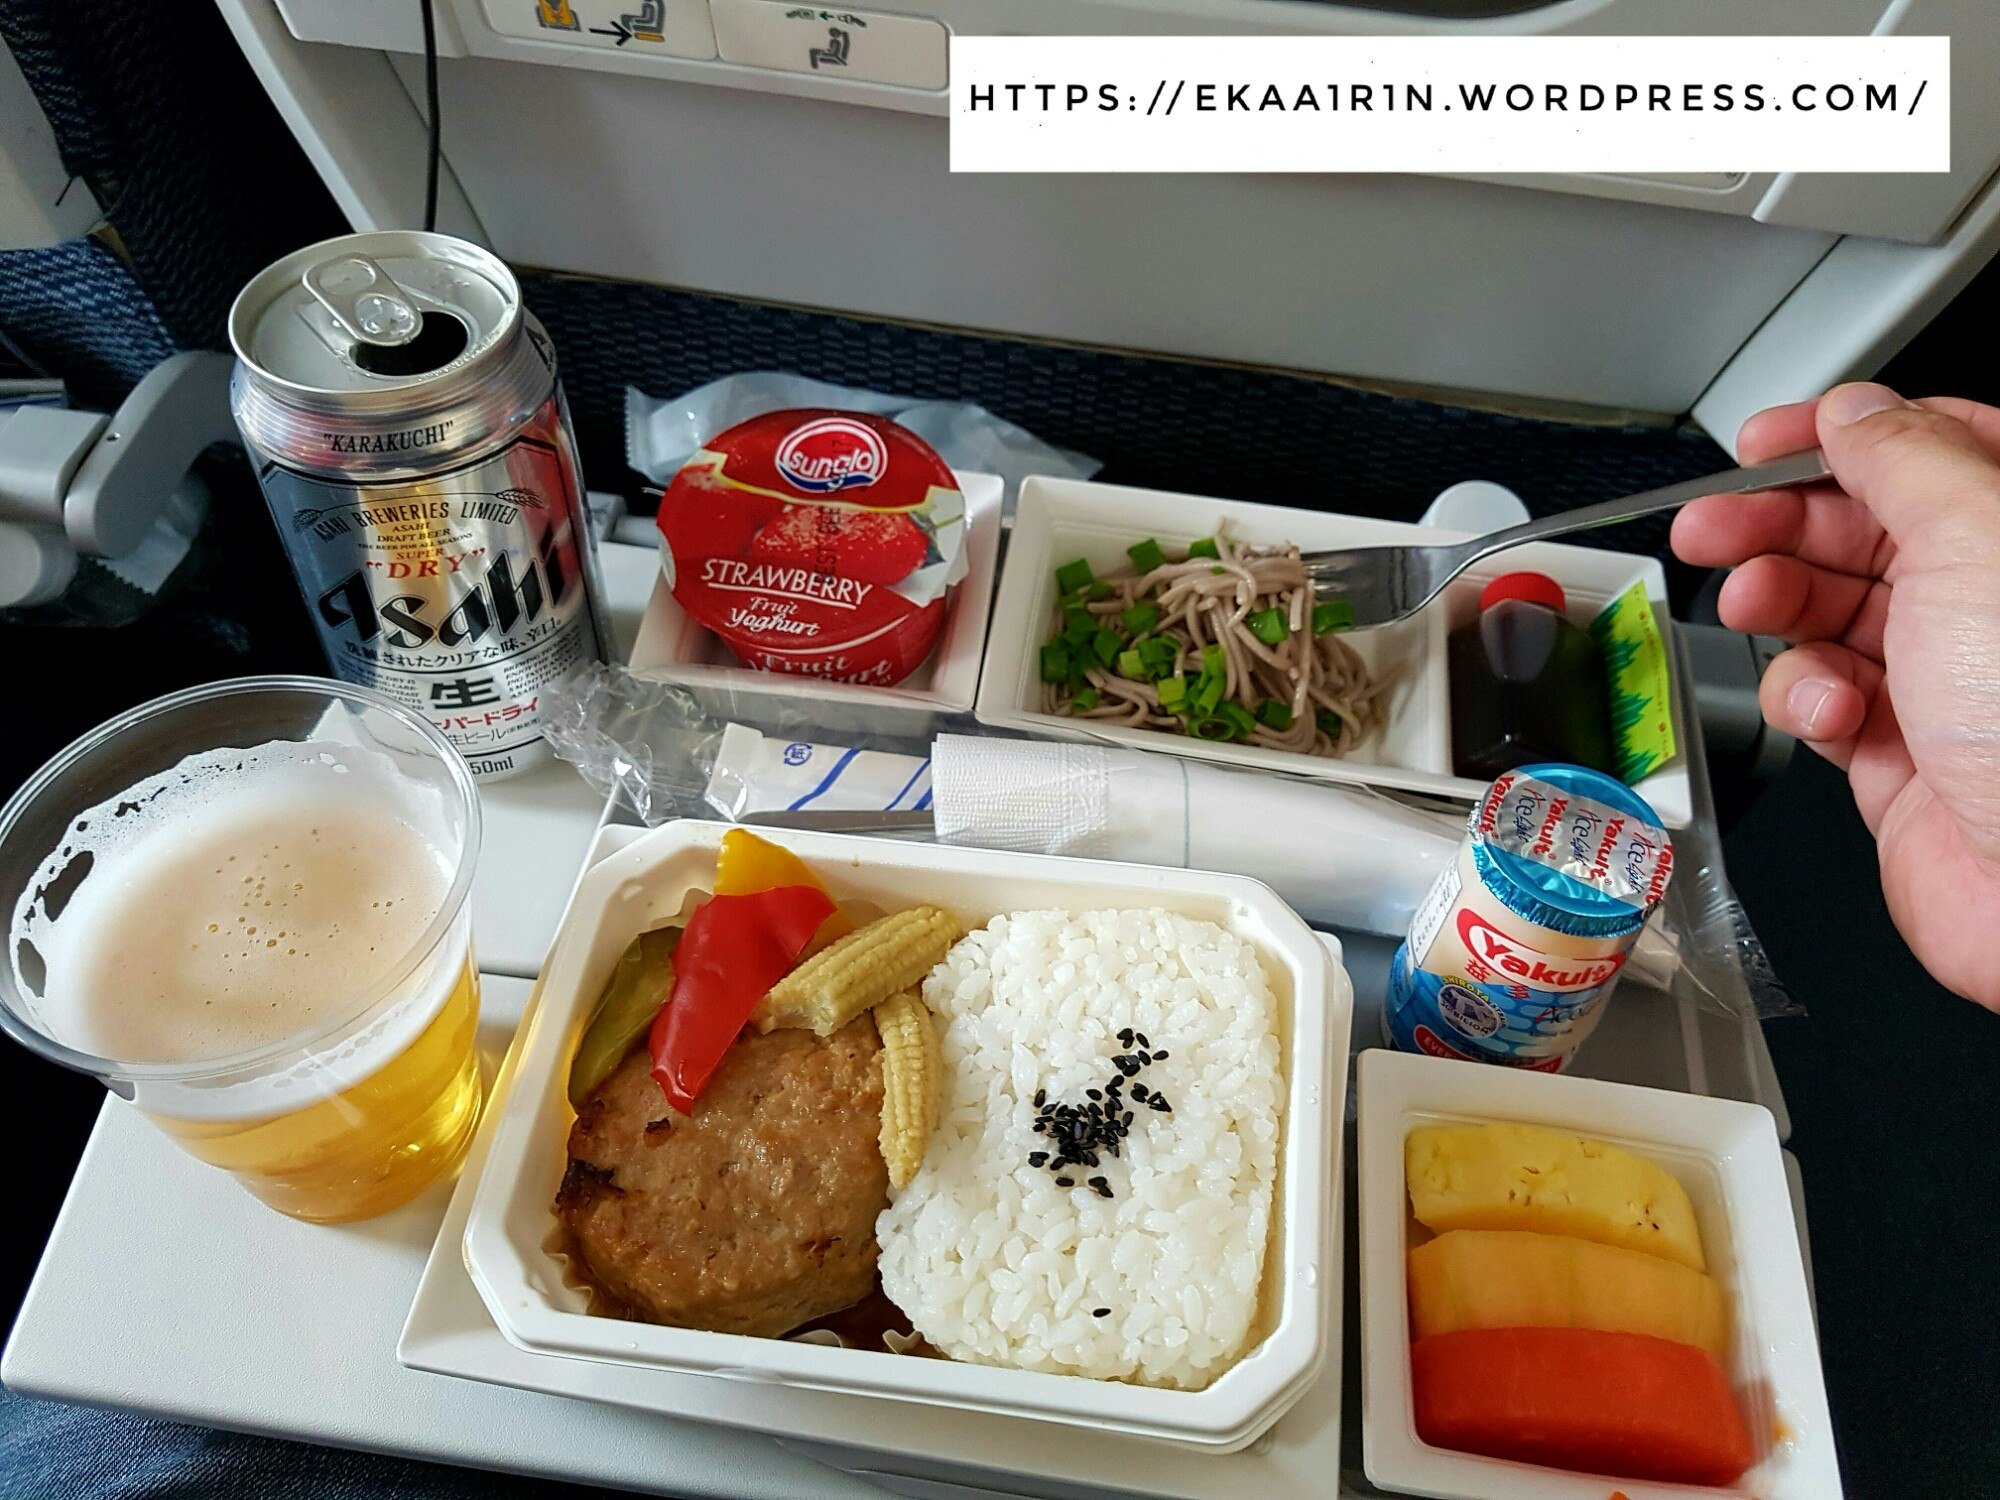 Starting from food…typically you will find that airlines food is far far from delicious and at the max you can expect is acceptable especially if you are